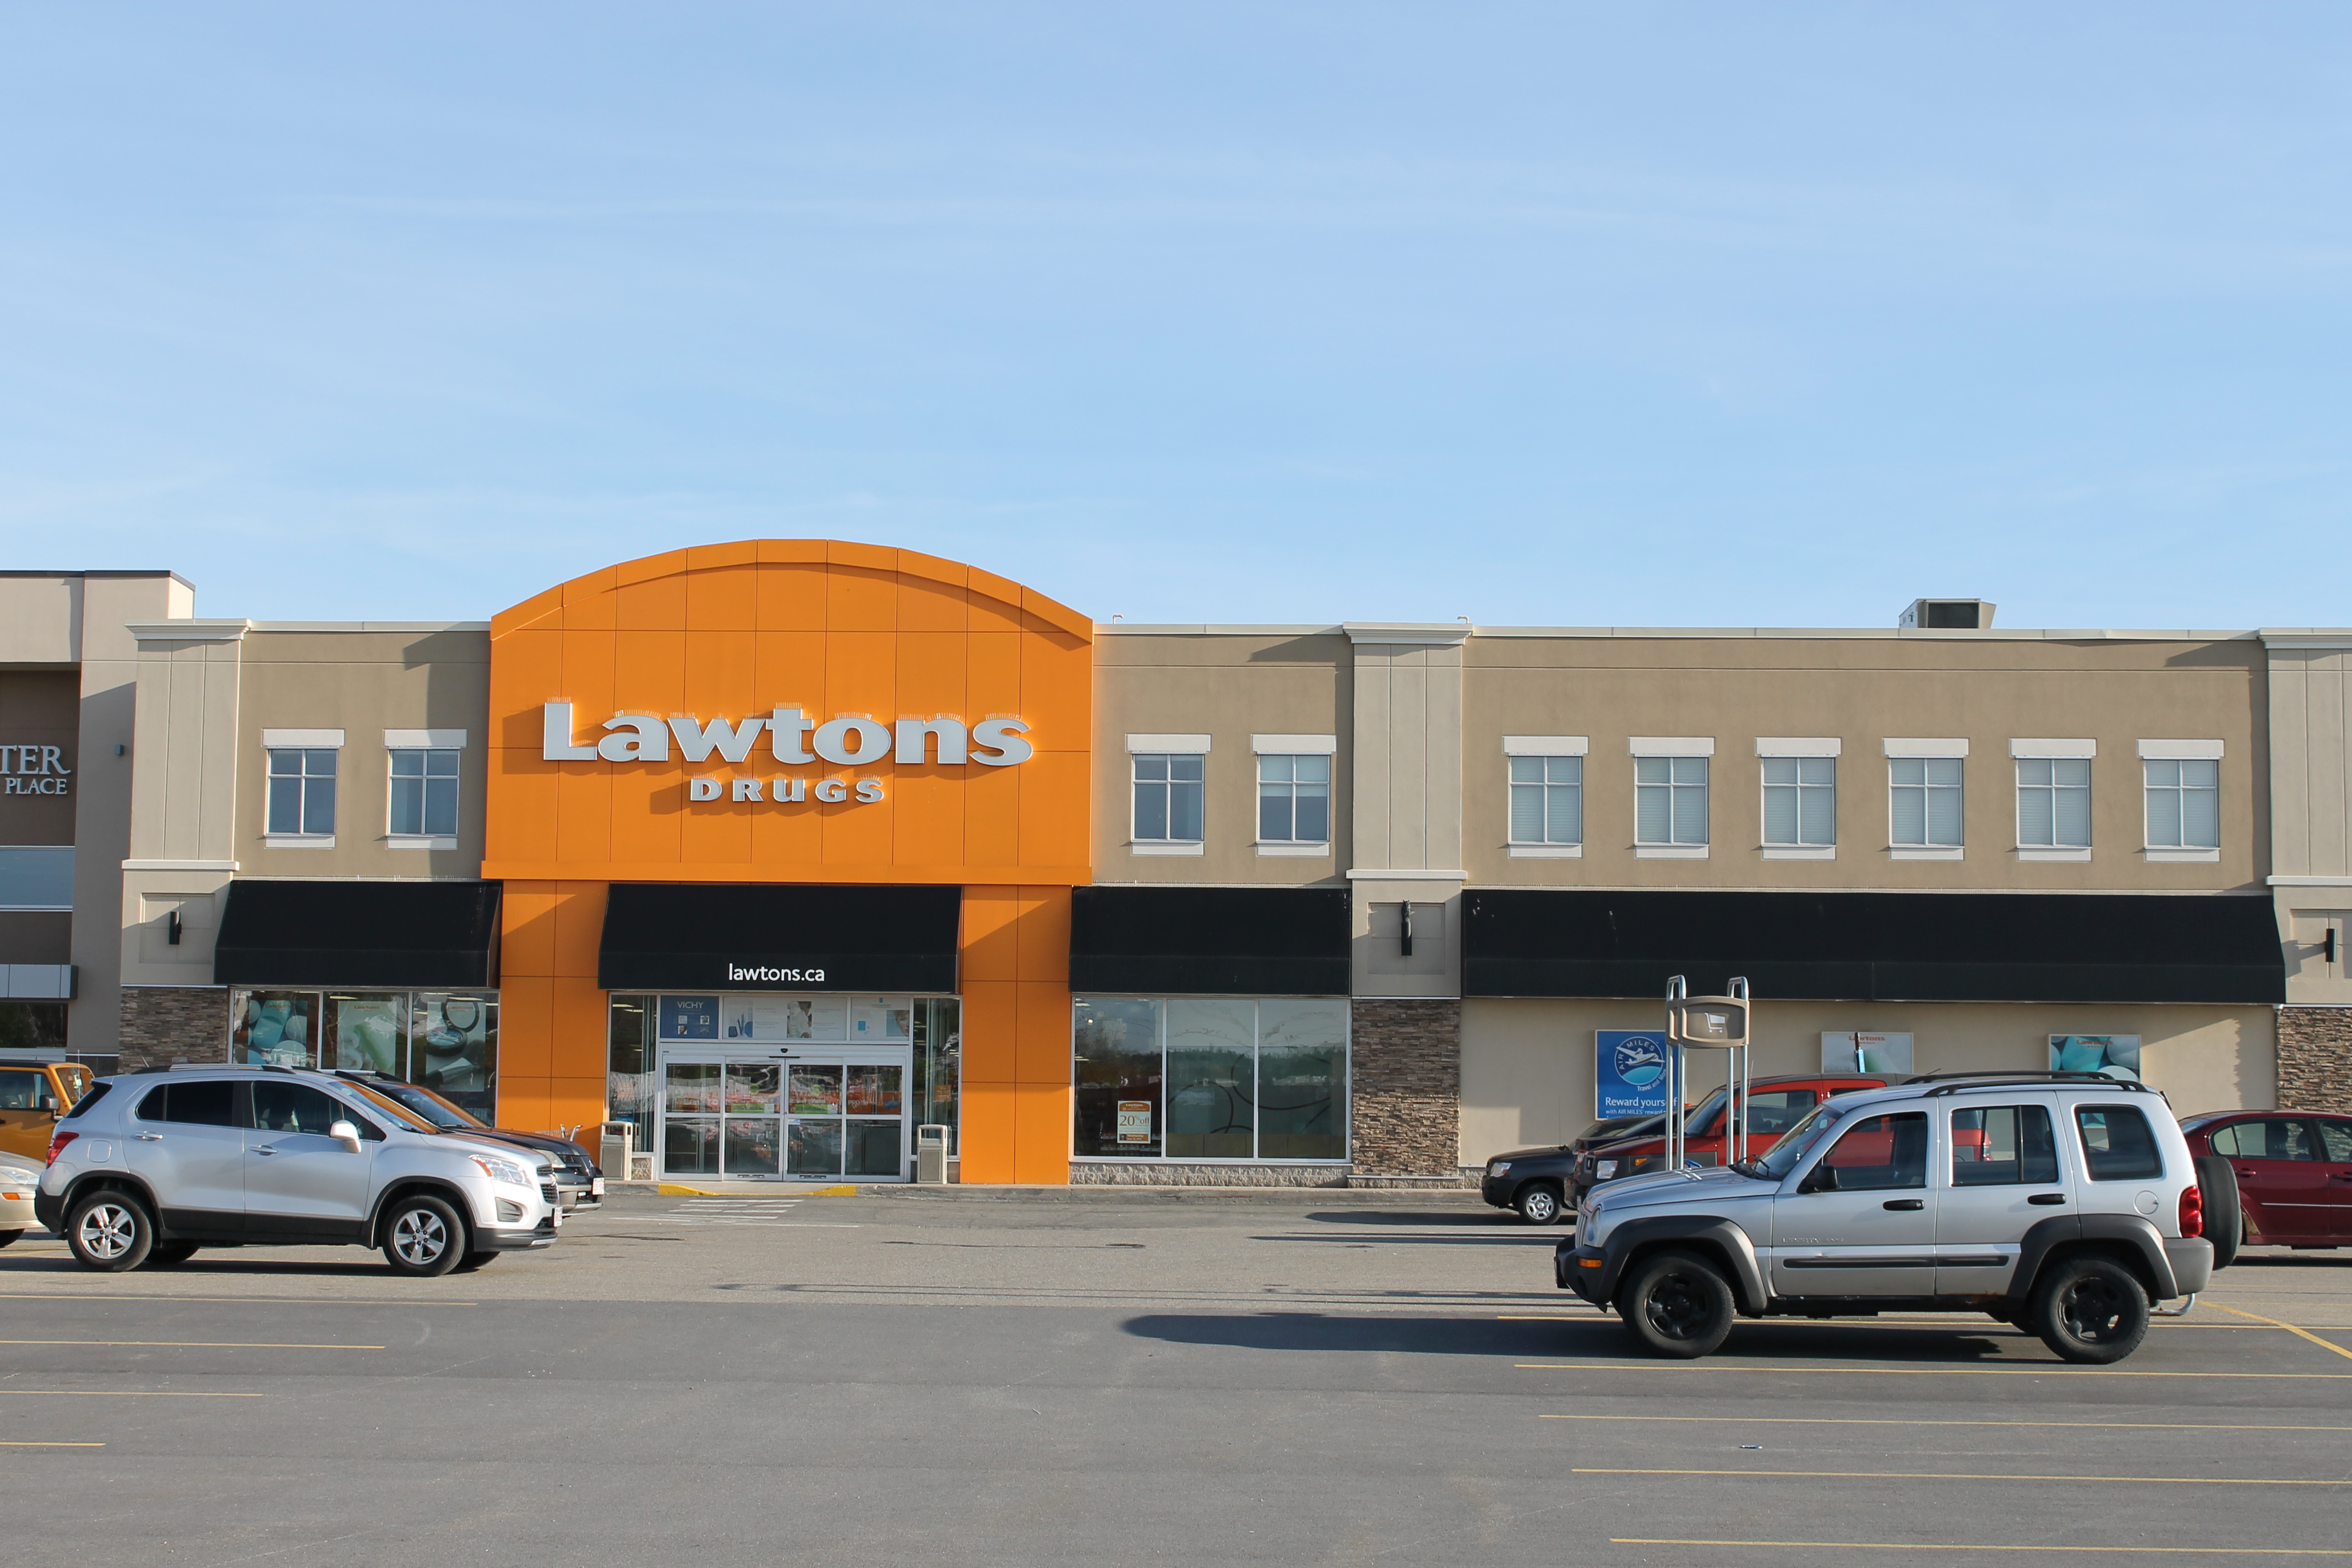 Lawton's Drug Store